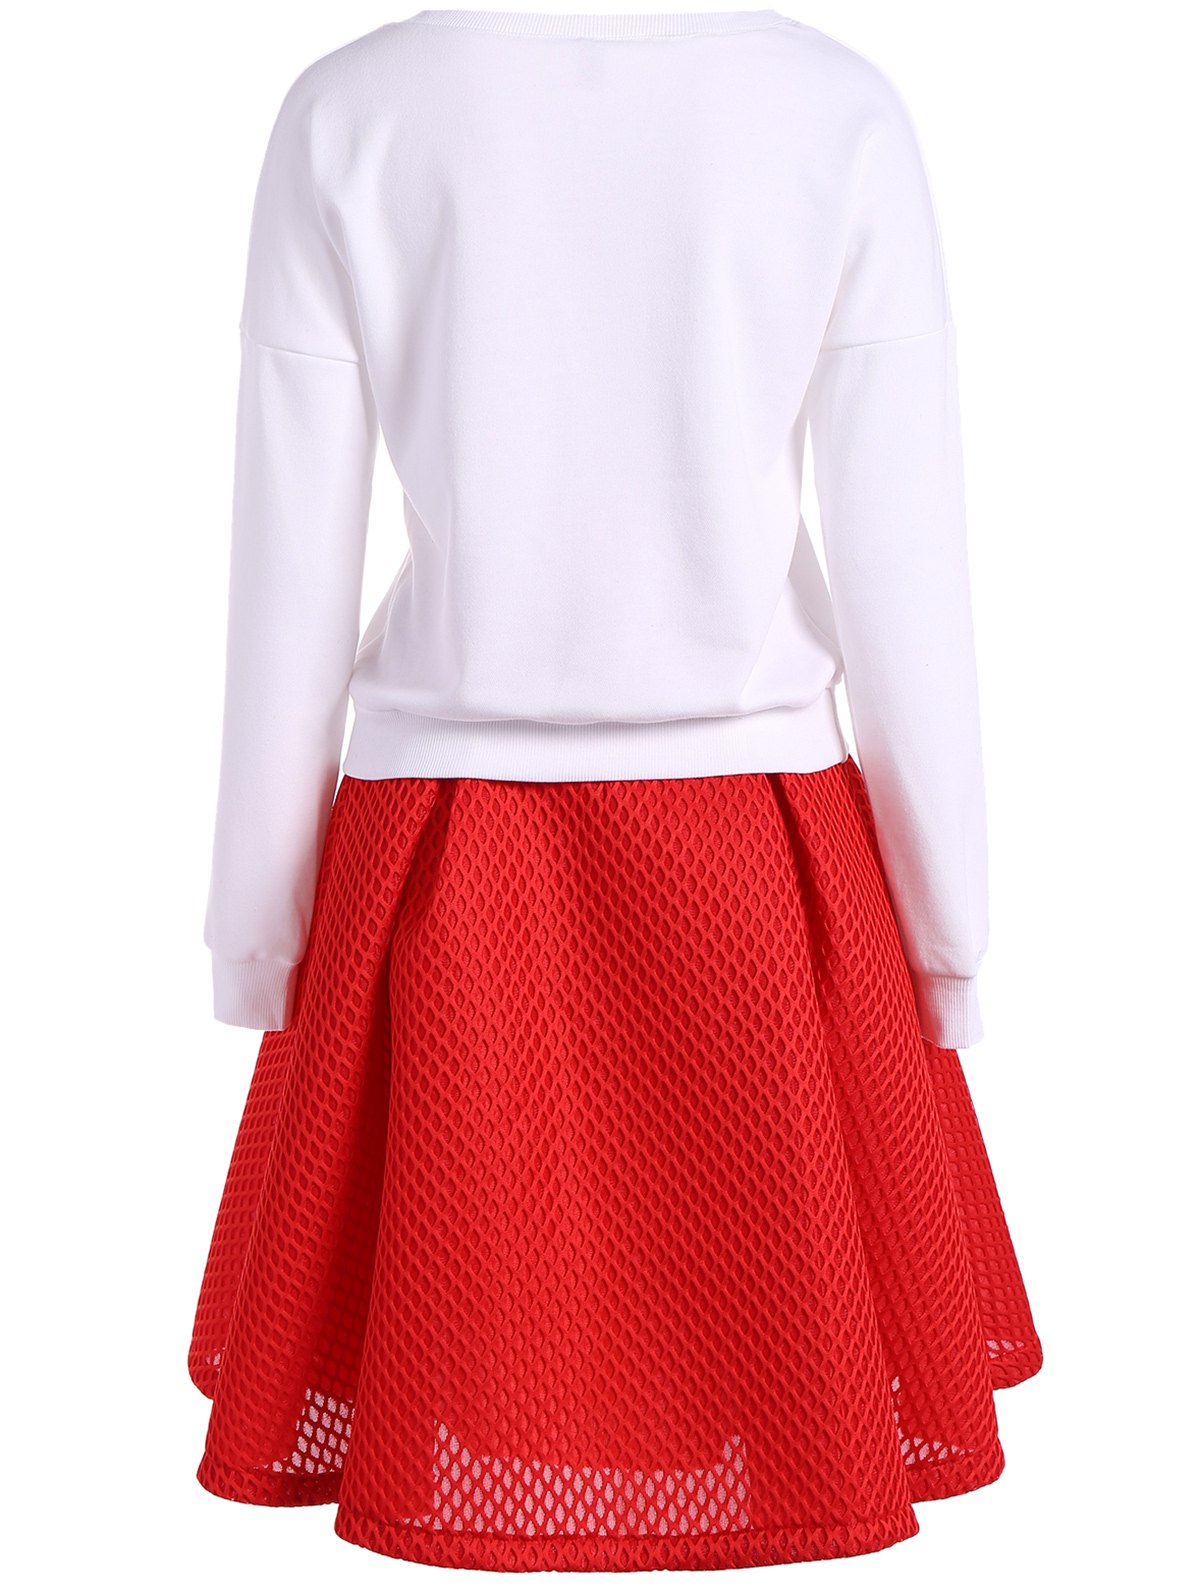 Stereo Floral Embellished Sweatshirt + High Waist Texture Skirt Twinset - WHITE M